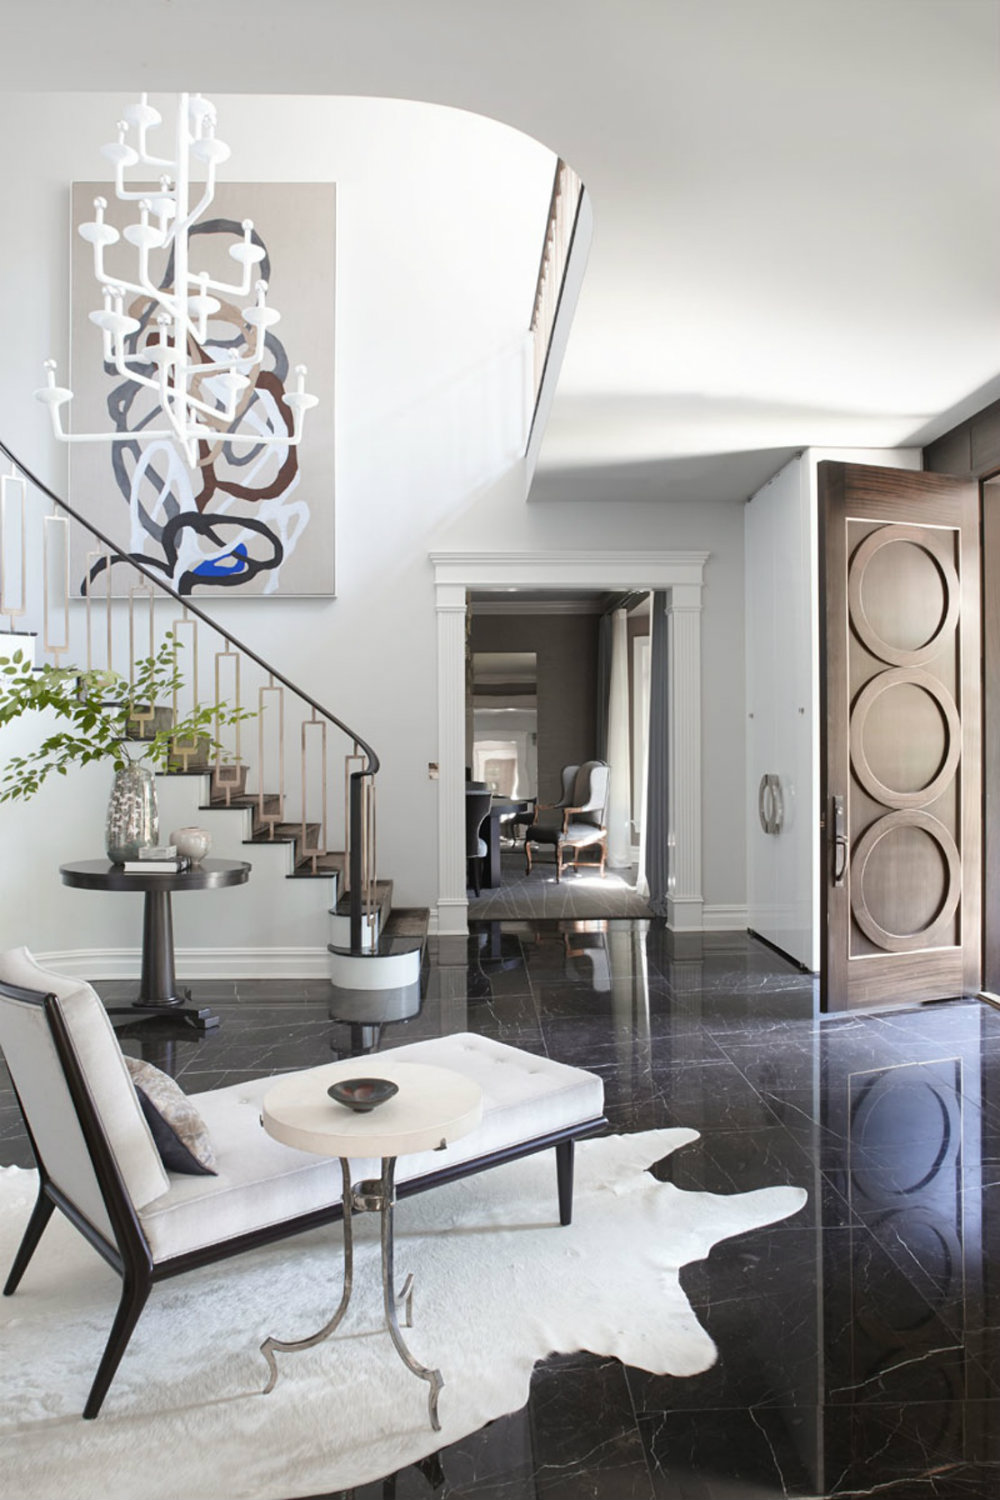 6 Luxurious Stairwell Designs You'll Love 03 Stairwell Designs 6 Luxurious Stairwell Designs You'll Love 6 Luxurious Stairwell Designs Youll Love 03